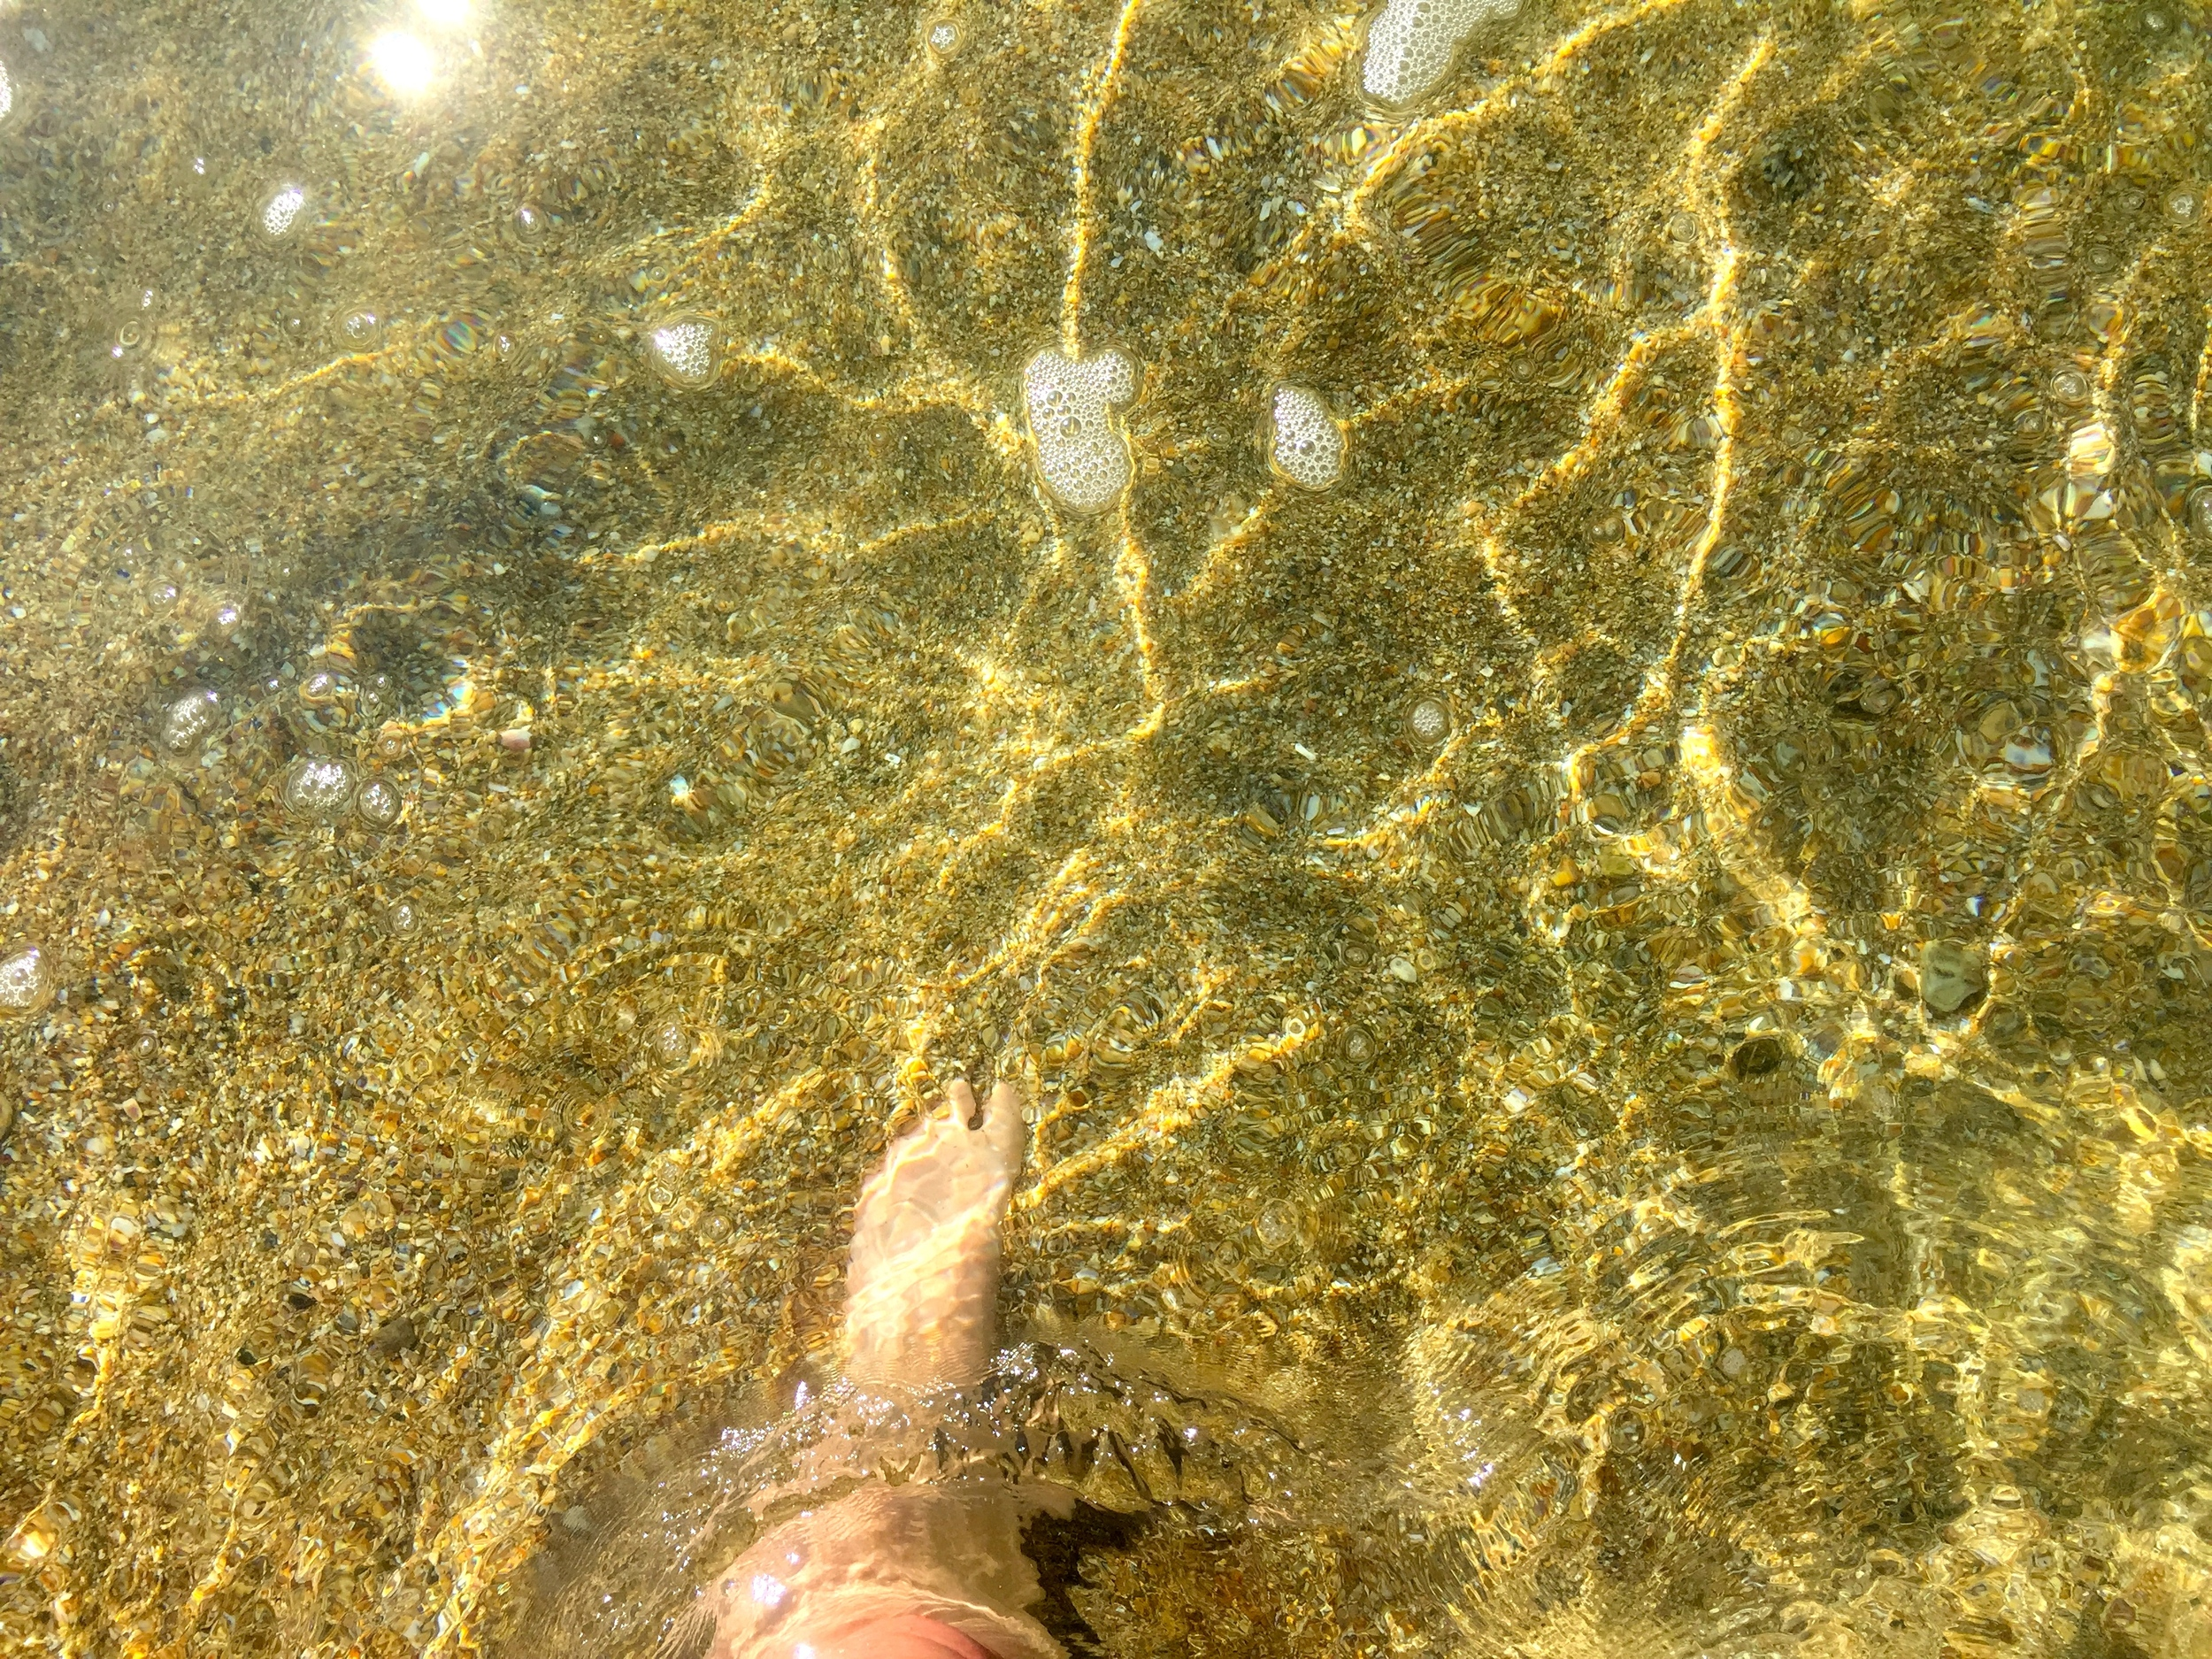 Check out that clear, warm water!